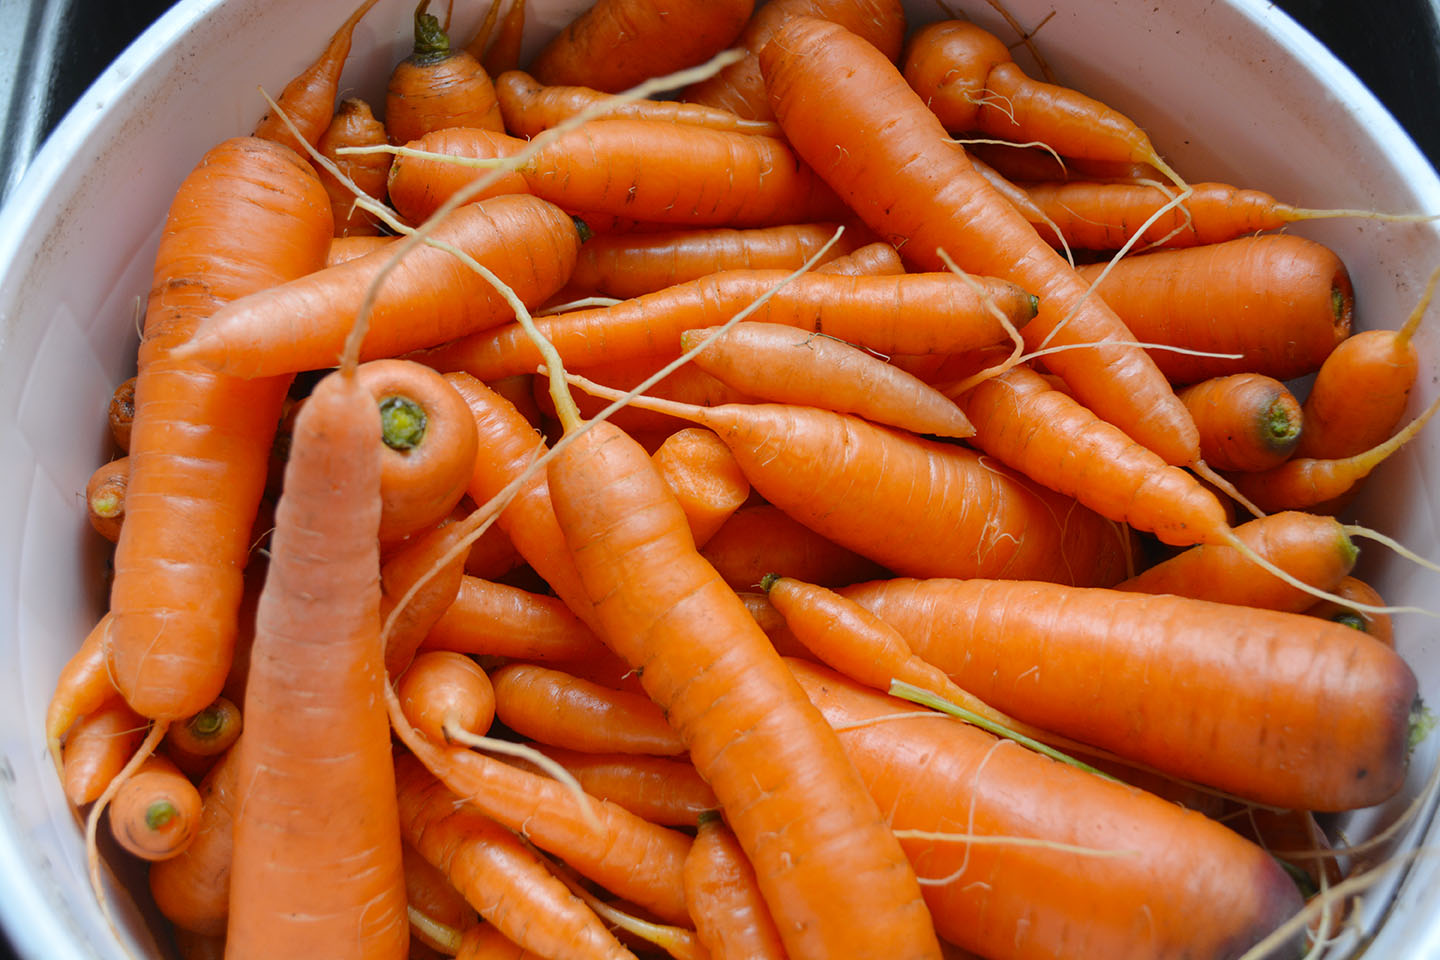 The ground had already started to freeze by the time I dug up my carrots, but I still got most of them up. They reached a decent size, considering how neglected they were in terms of thinning and watering. (These are sweet Nantes variety, so not a huge carrot.)